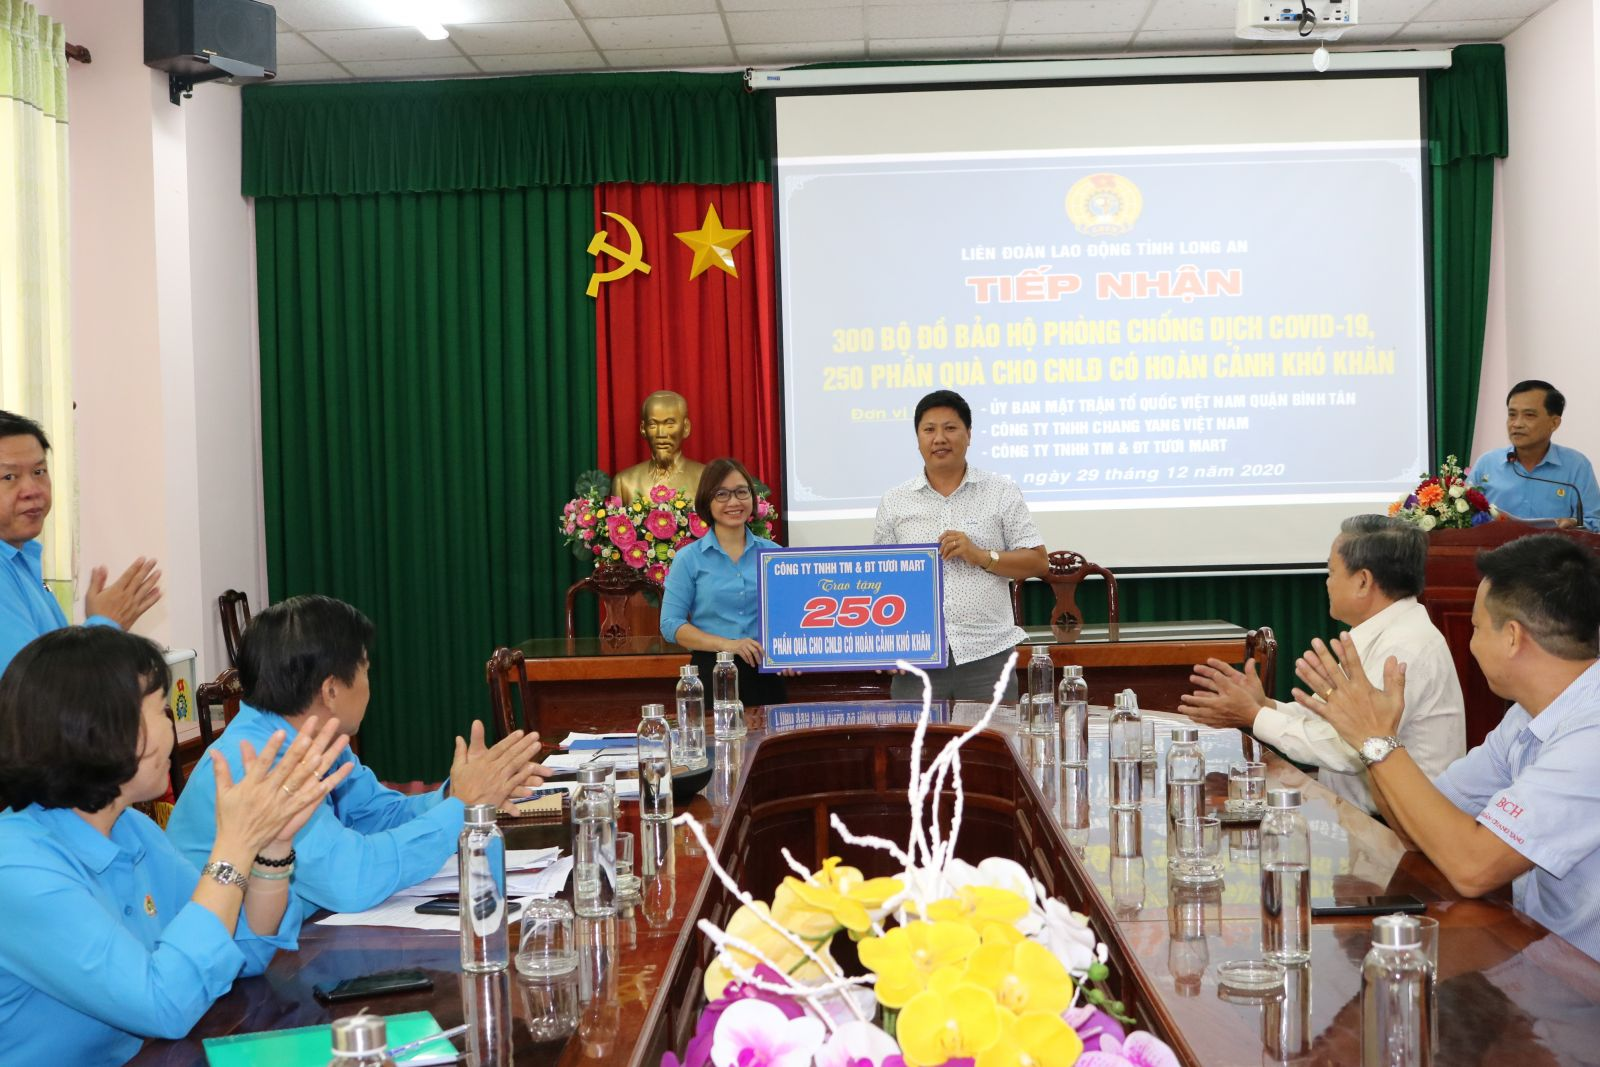 Vice Chairwoman of the Provincial Labor Confederation - Pham Thi Quyen received gifts from sponsors to help workers in difficult circumstances due to the Covid-19 epidemic